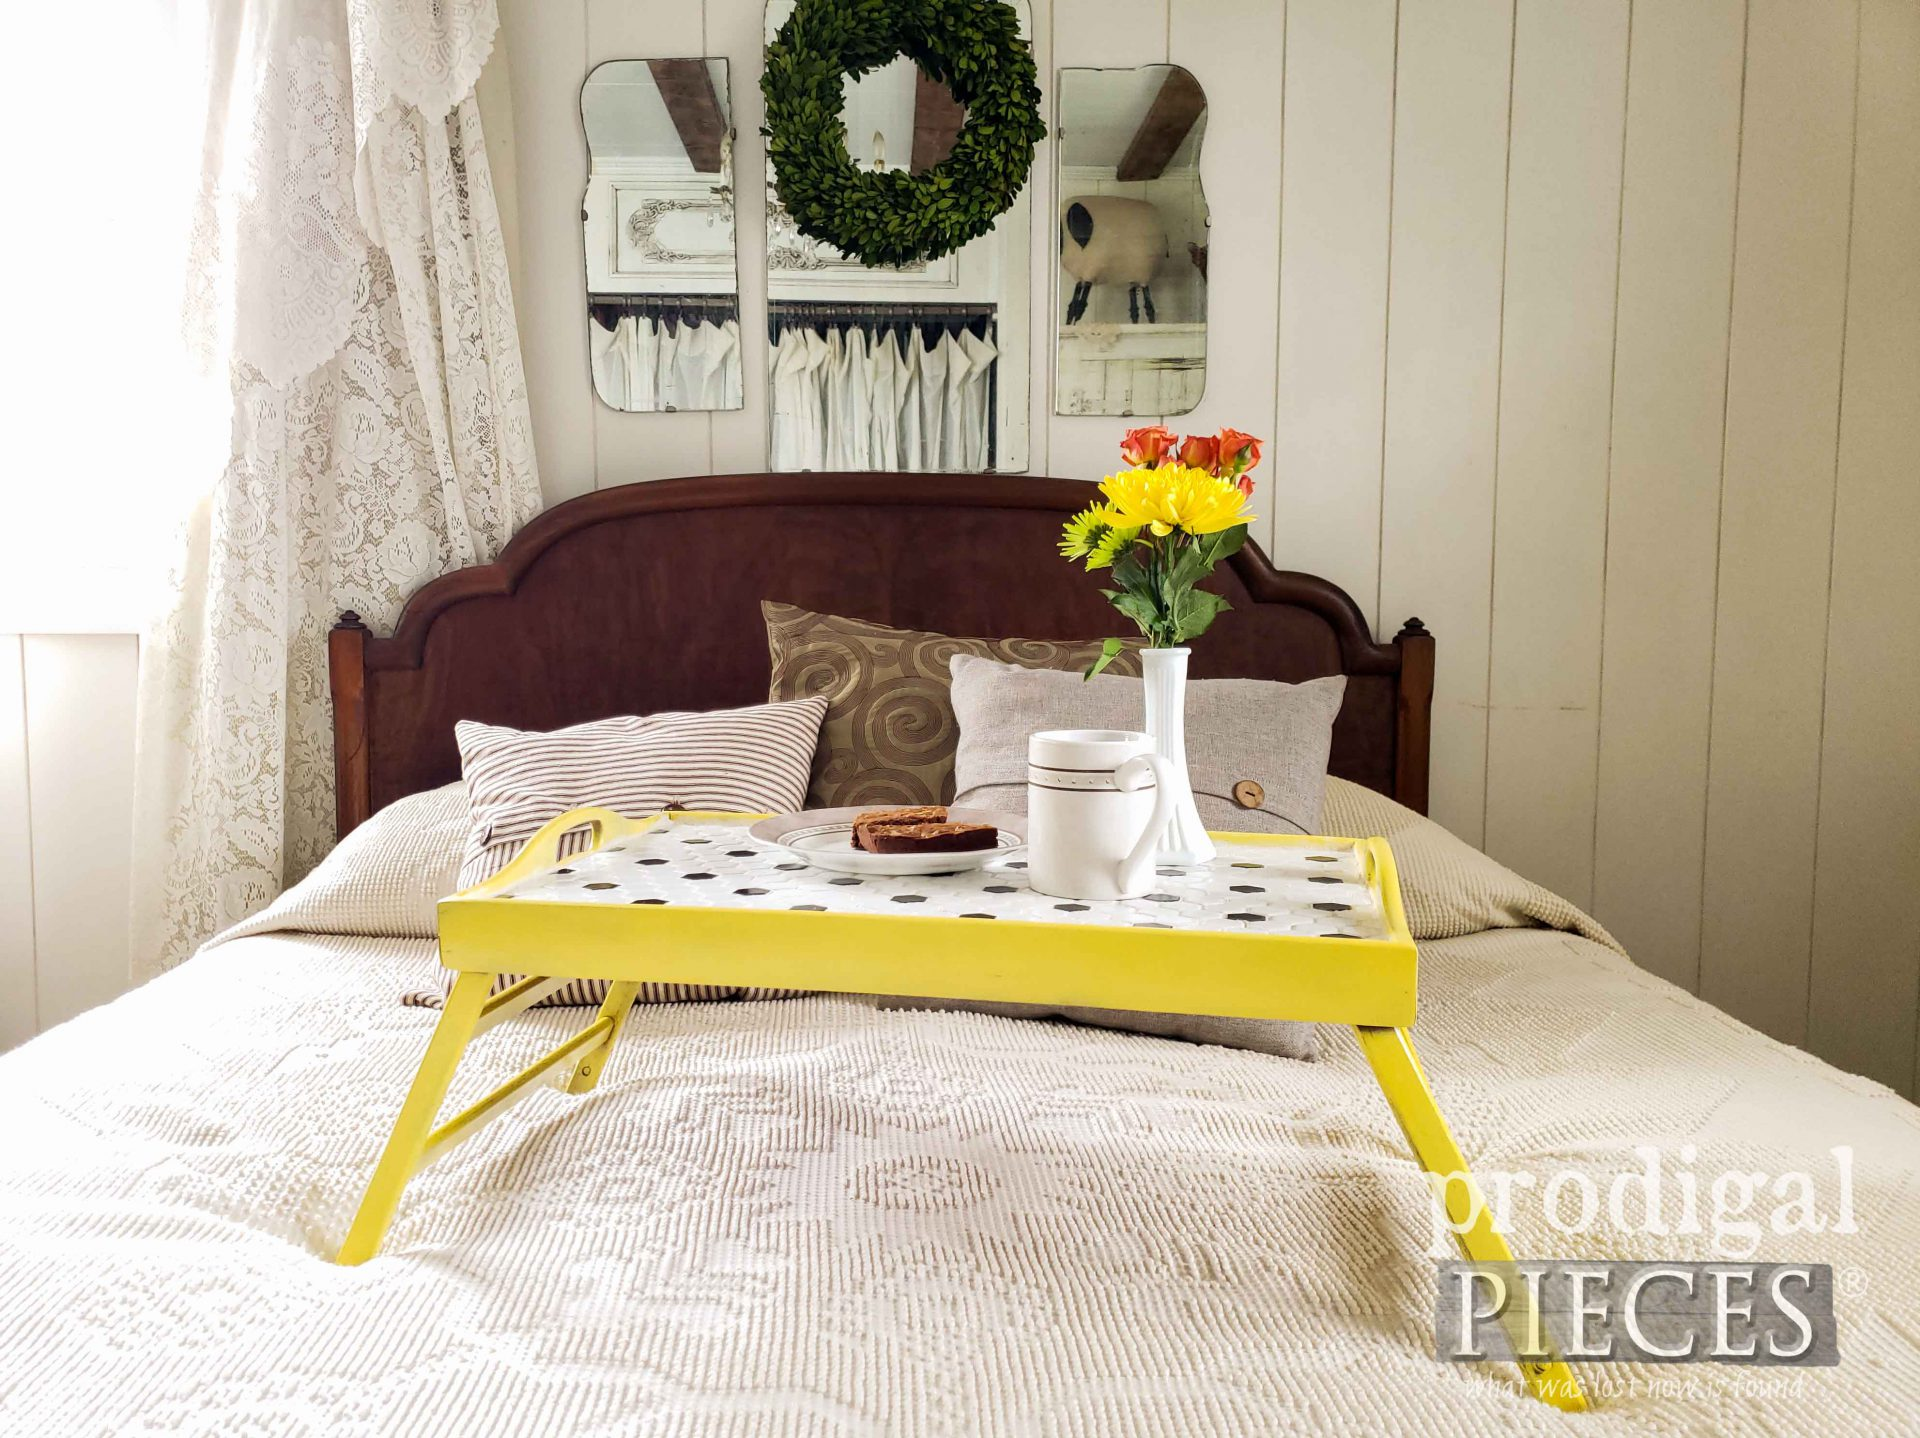 Modern Farmhouse DIY Tiled Tray in Yellow by Larissa of Prodigal Pieces | prodigalpieces.com #prodigalpieces #diy #modern #farmhouse #home #homedecor